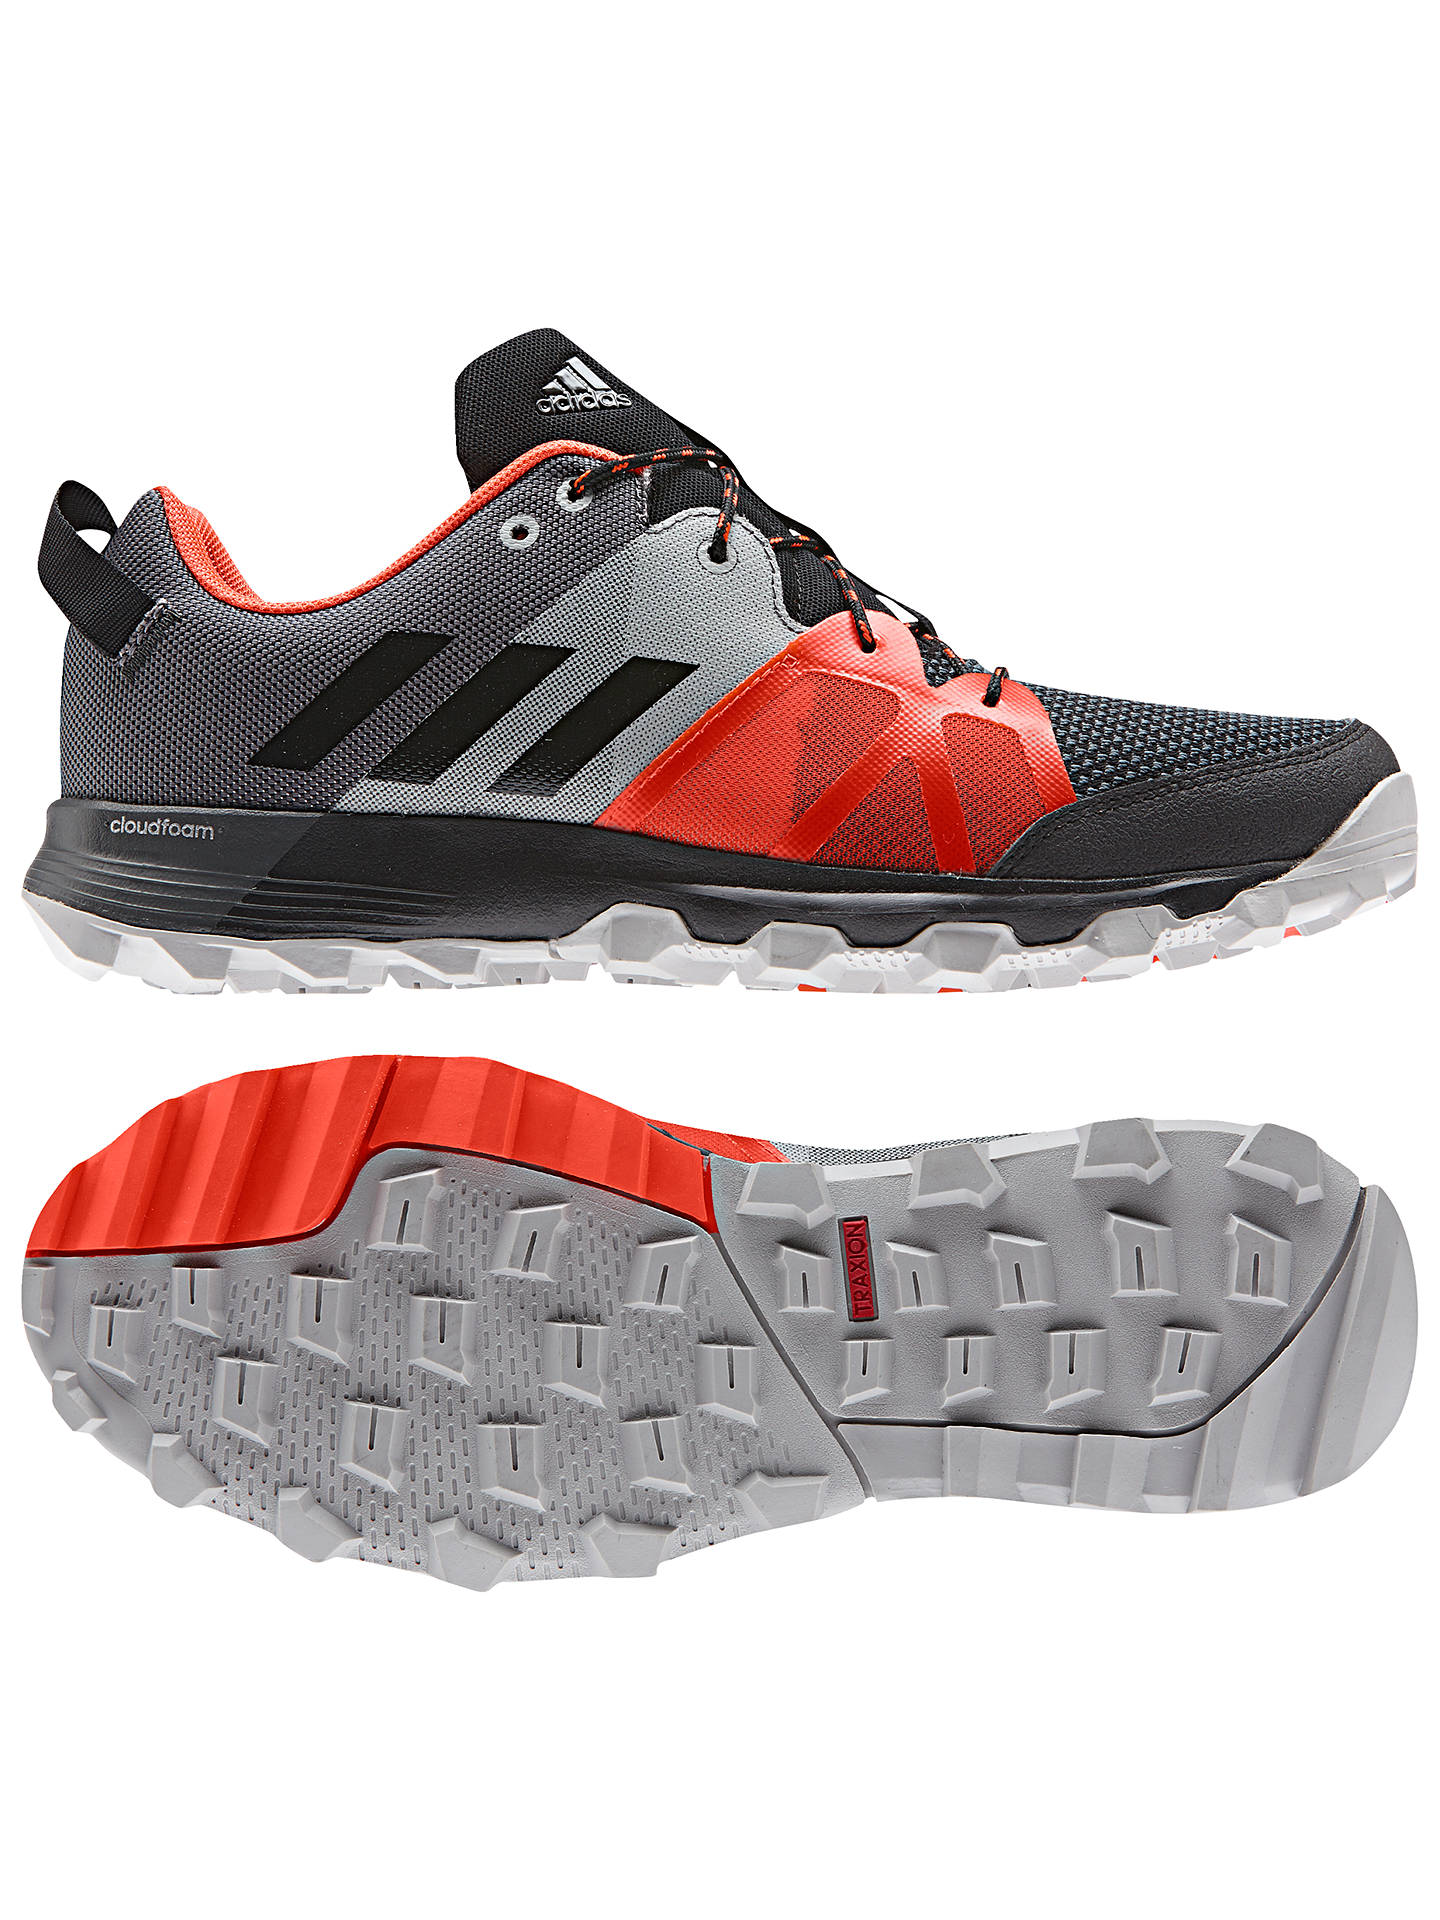 adidas Kanadia 8.1 Trail Men's Running Shoes, Black at John ...